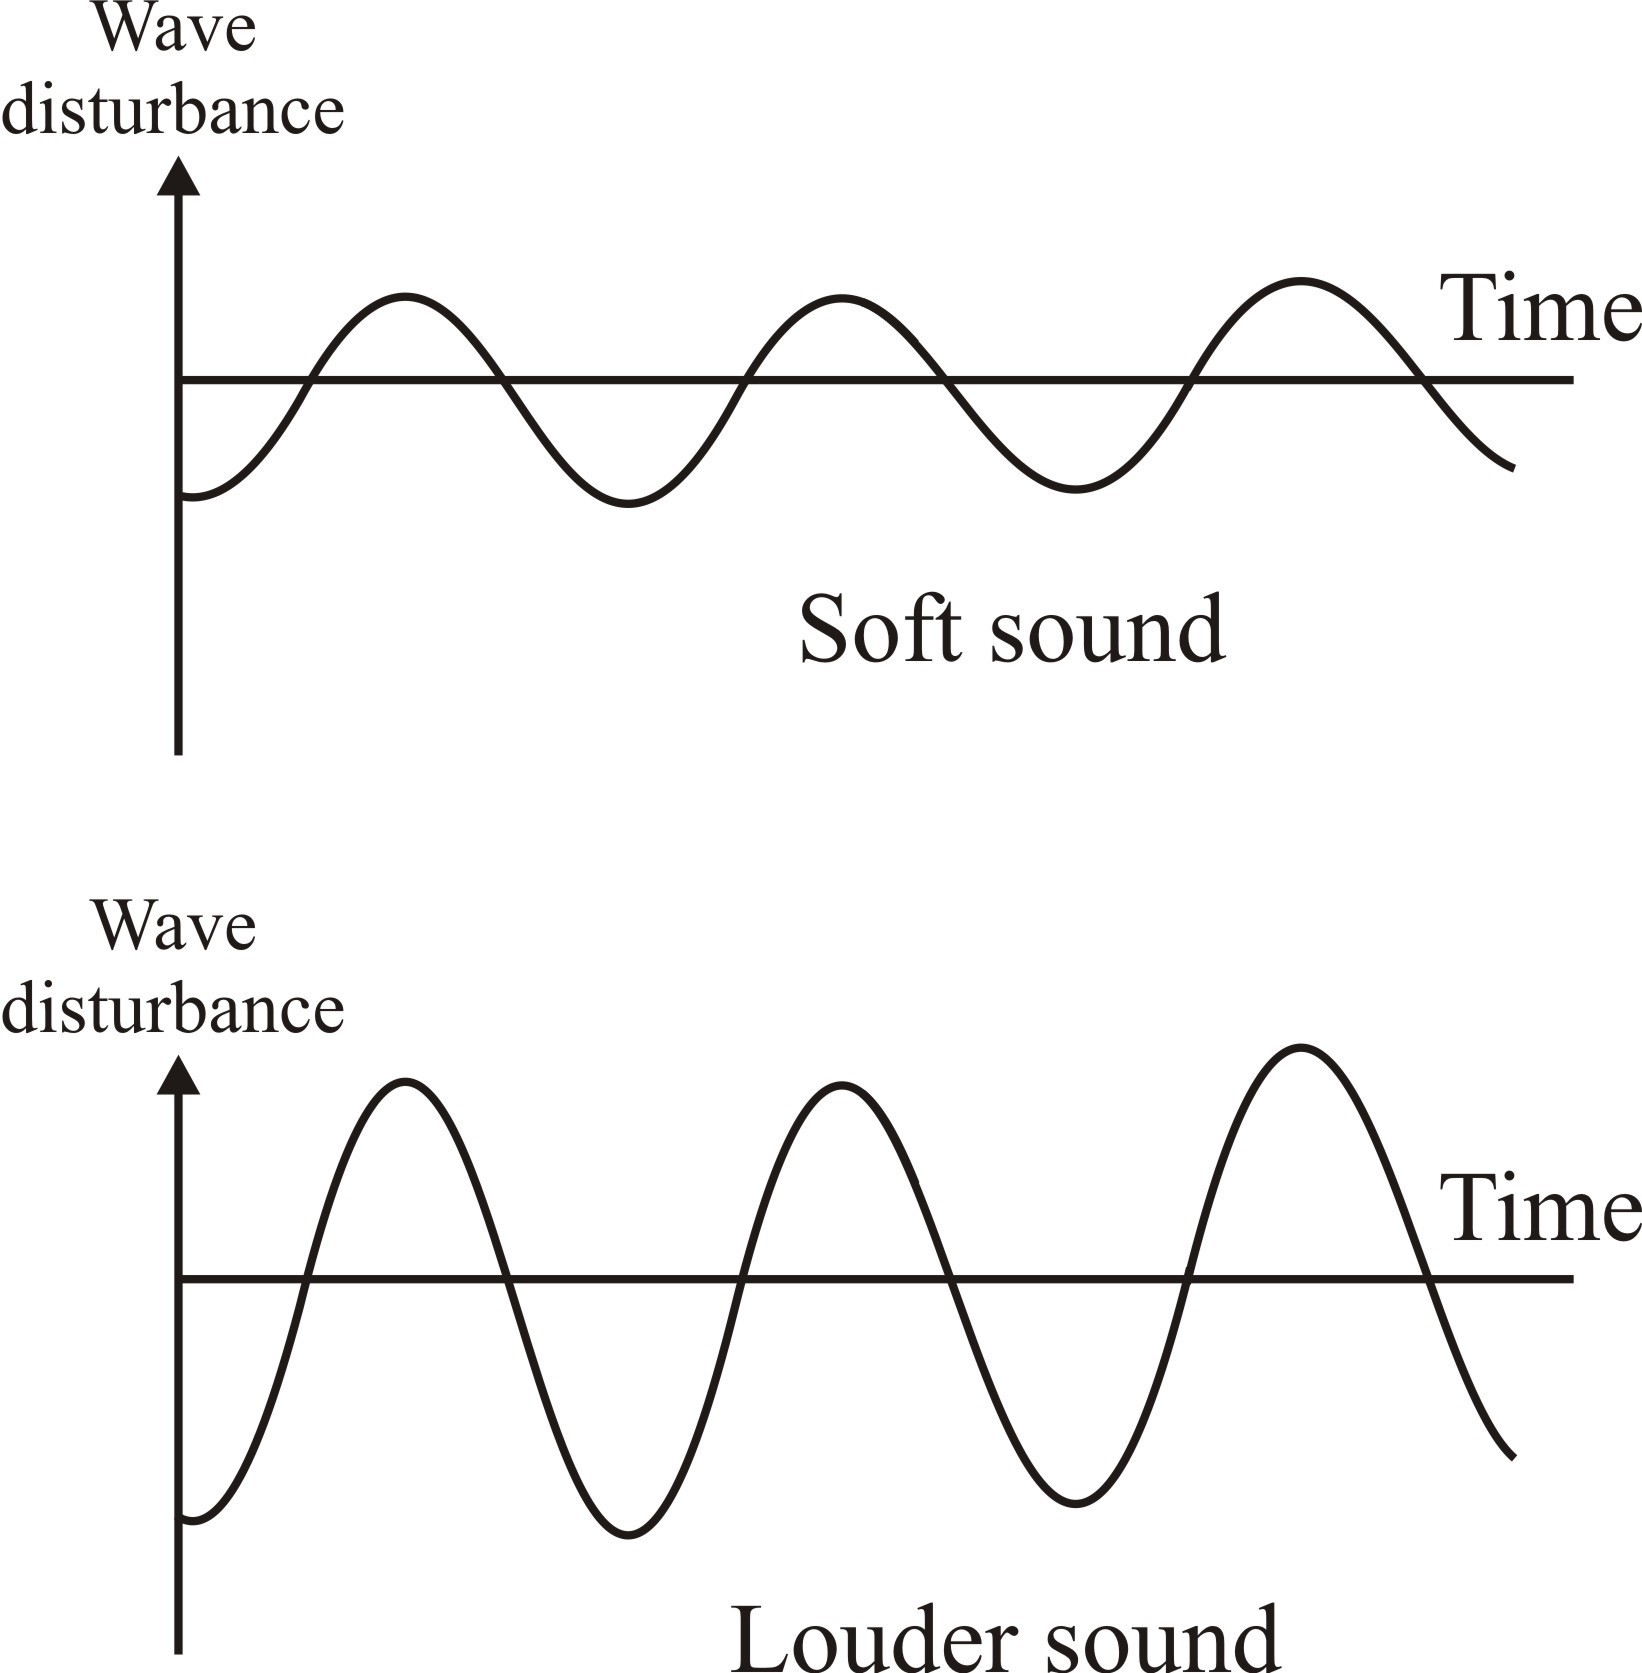 Difference Between Soft And Loud Sound